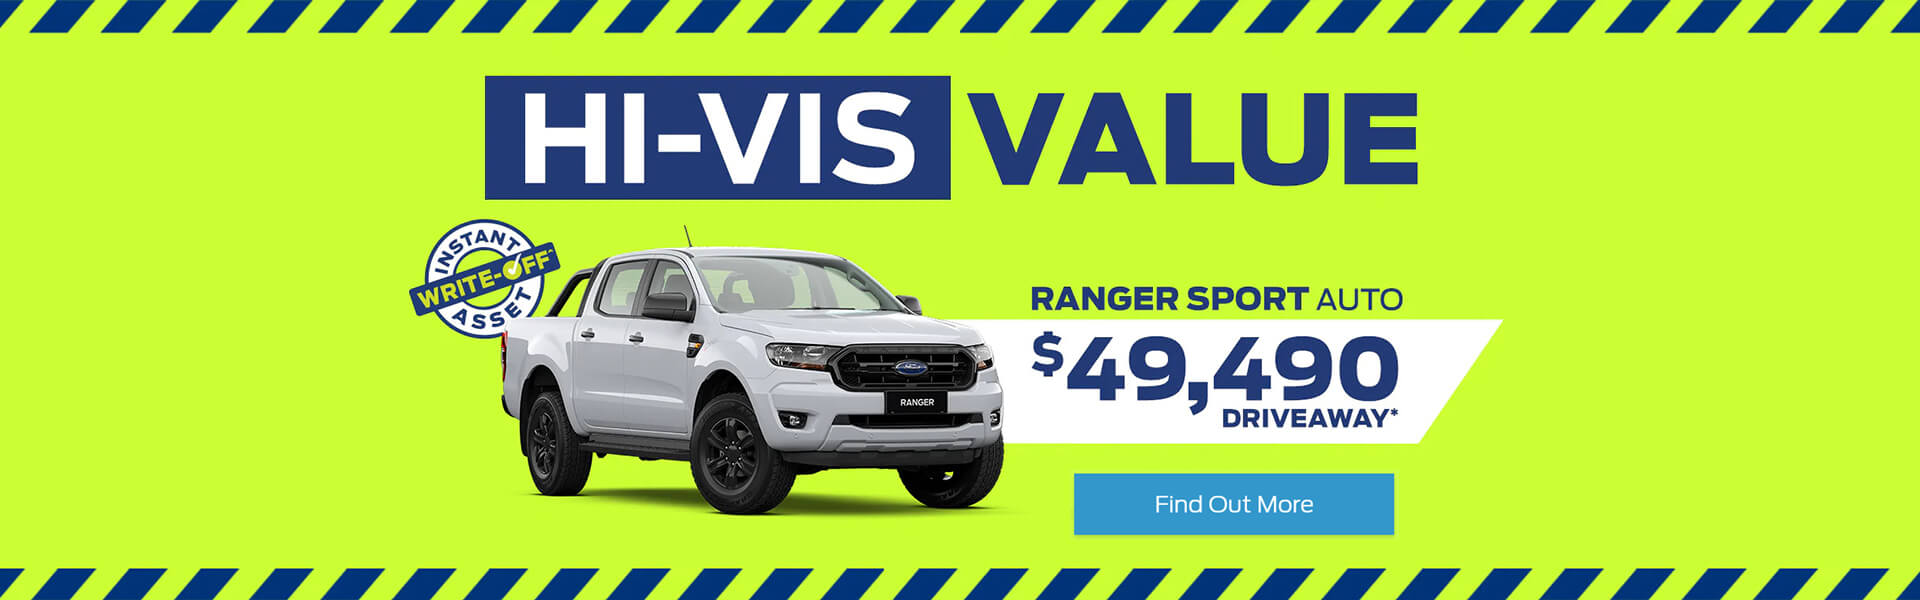 Hi-Vis Value Ranger Sport Auto